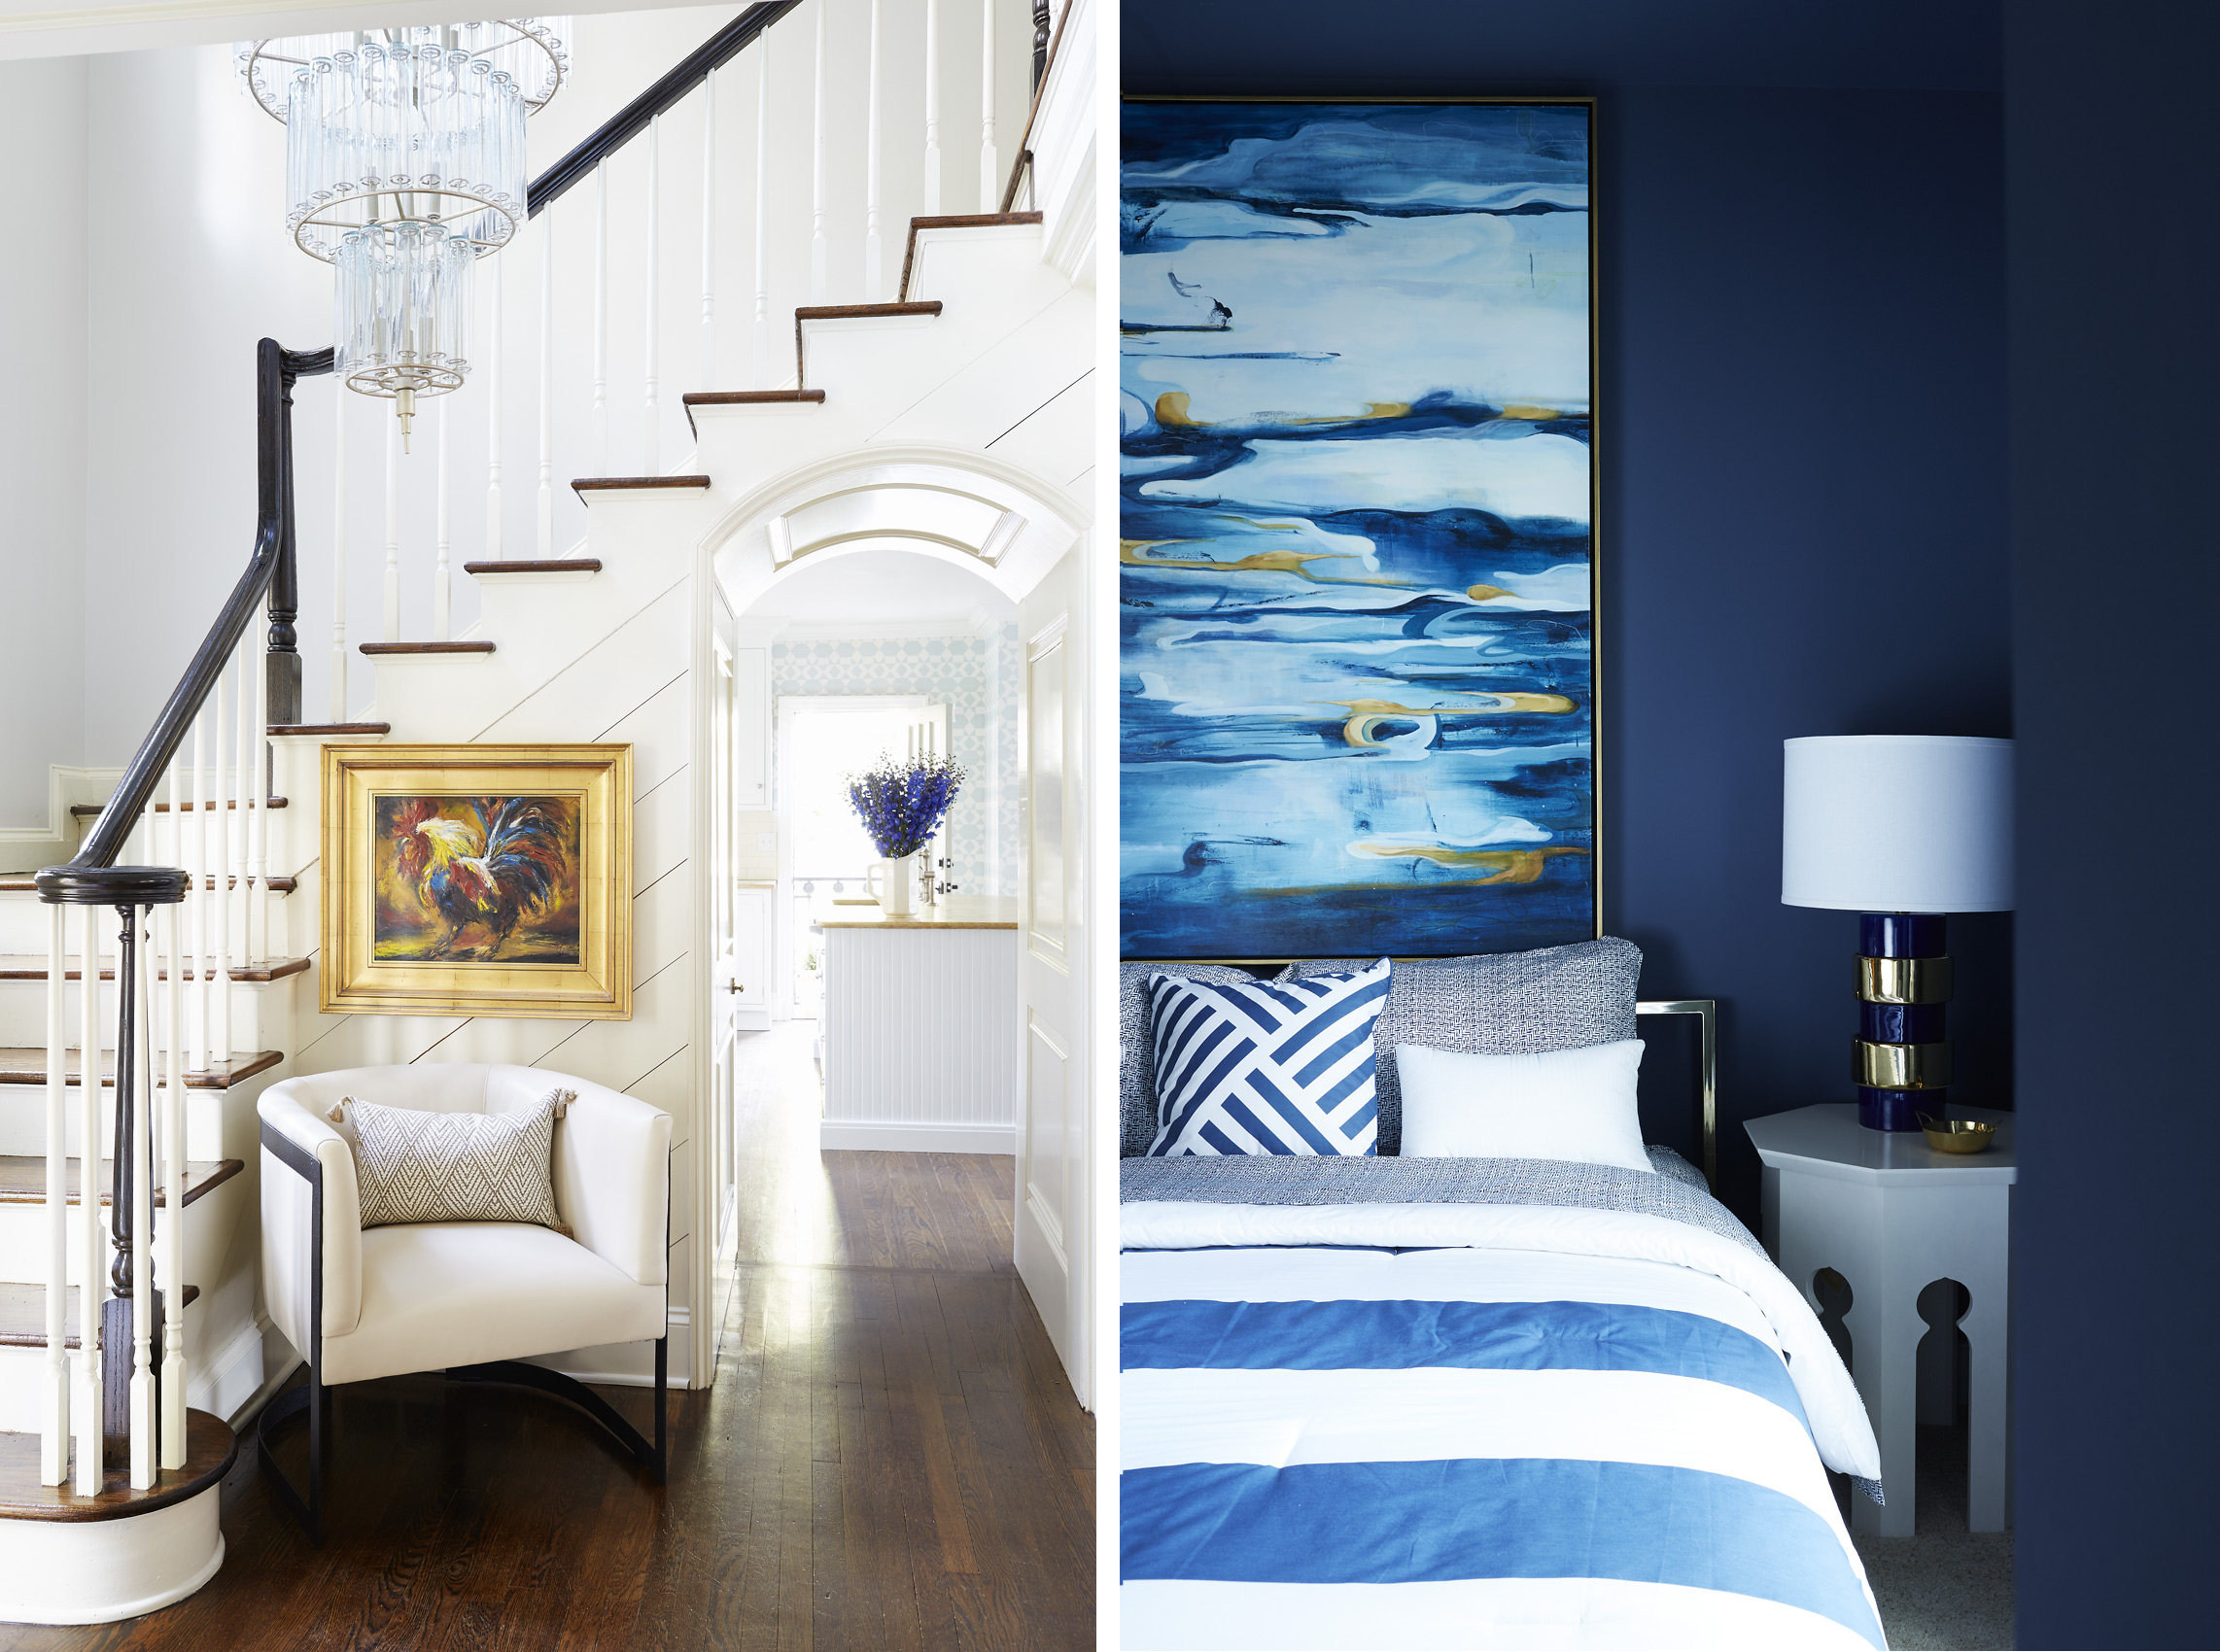 Kristin Kong interiors in both photos, Mali Azima photographer.